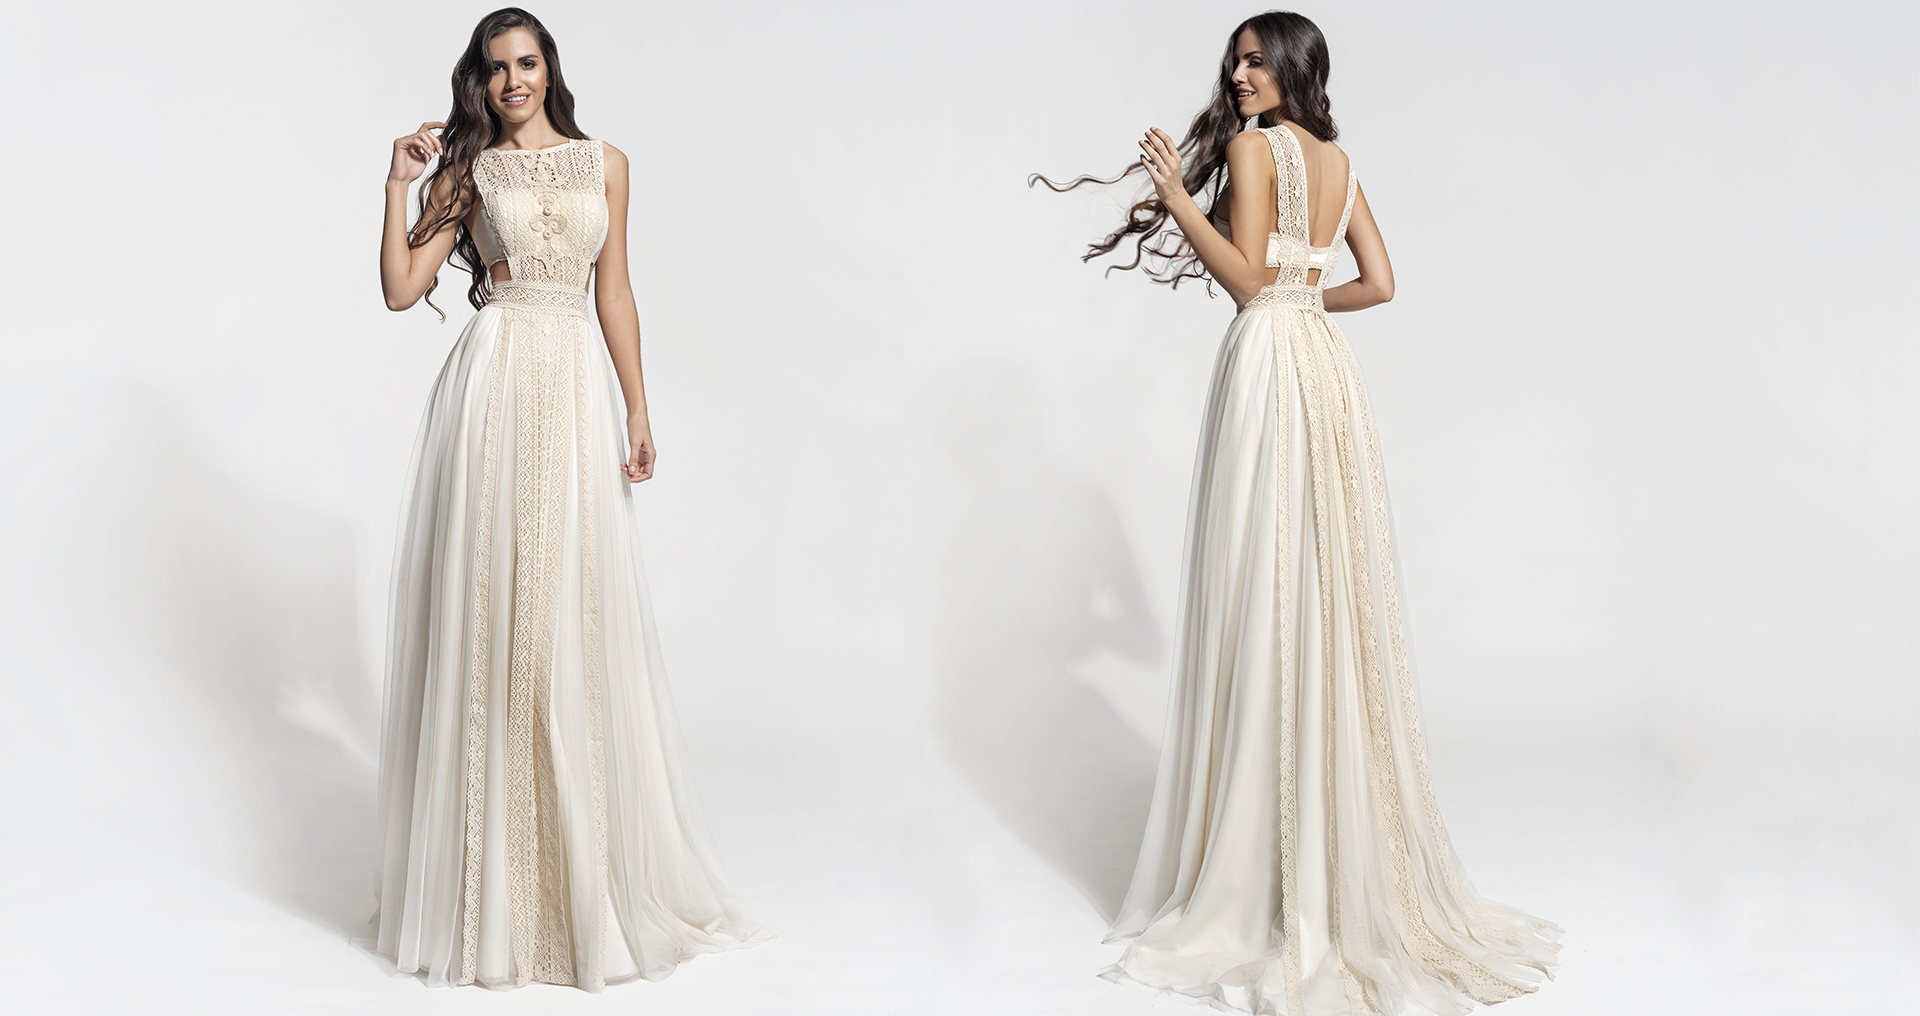 Phillys wedding dress from  Hellenic Vintage Core Collection